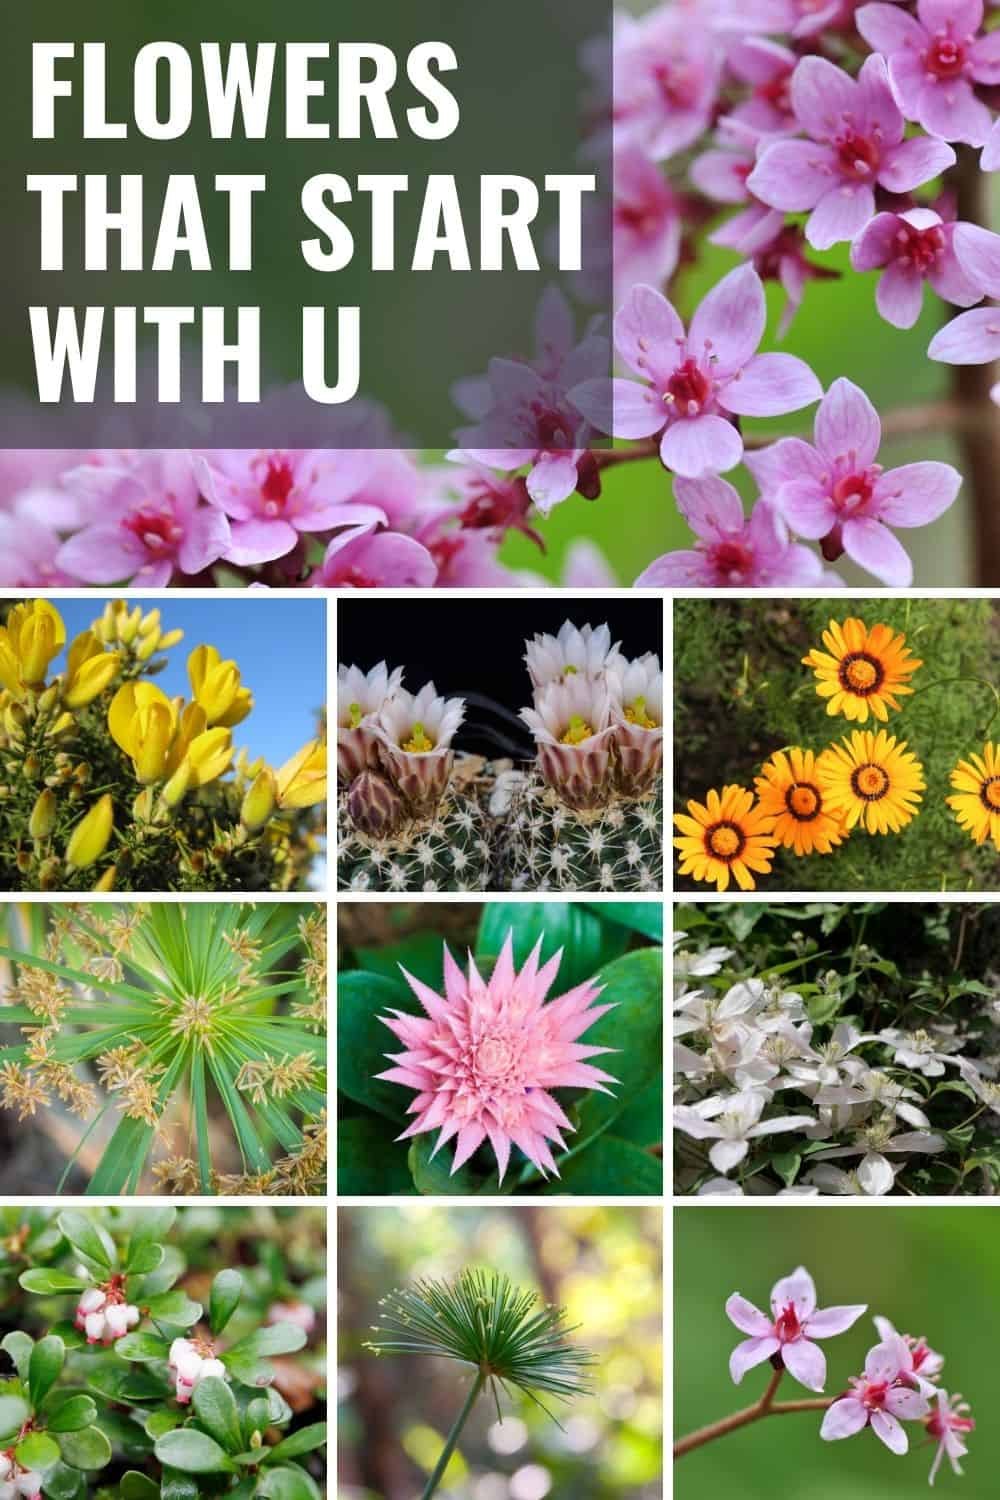 Flowers that start with u